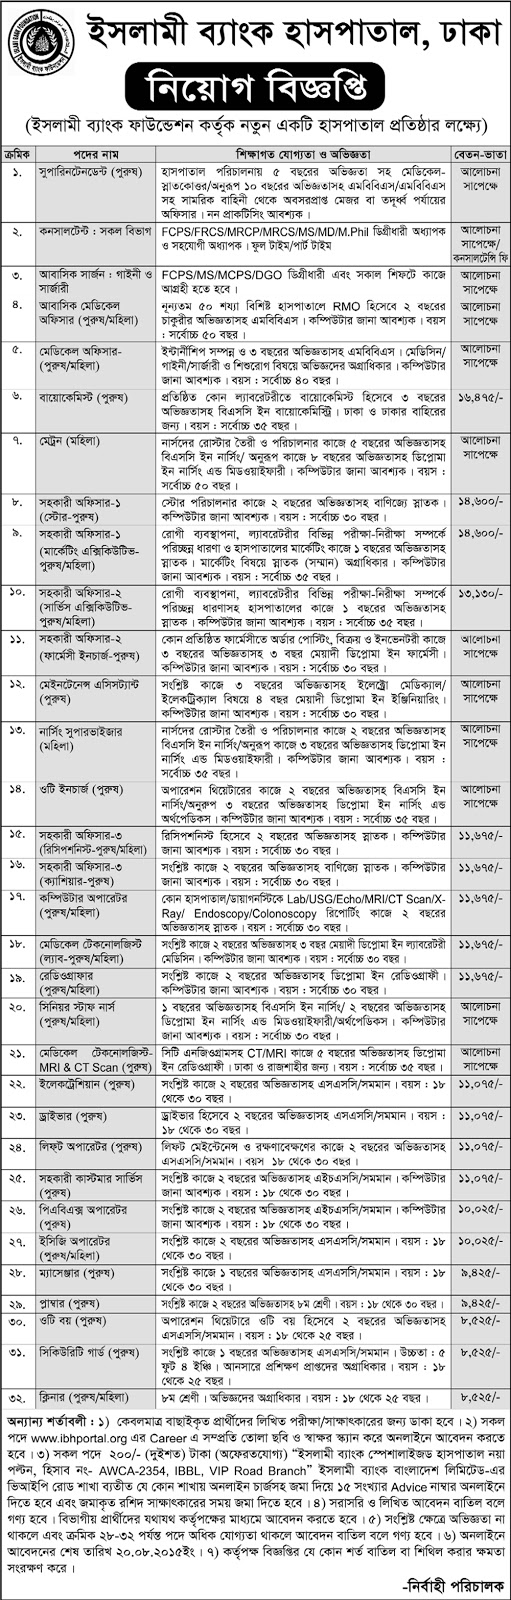 Post: Superintendent, Medical Officer, PABX-Operator and More | Organization: ISLAMI Bank Hospital